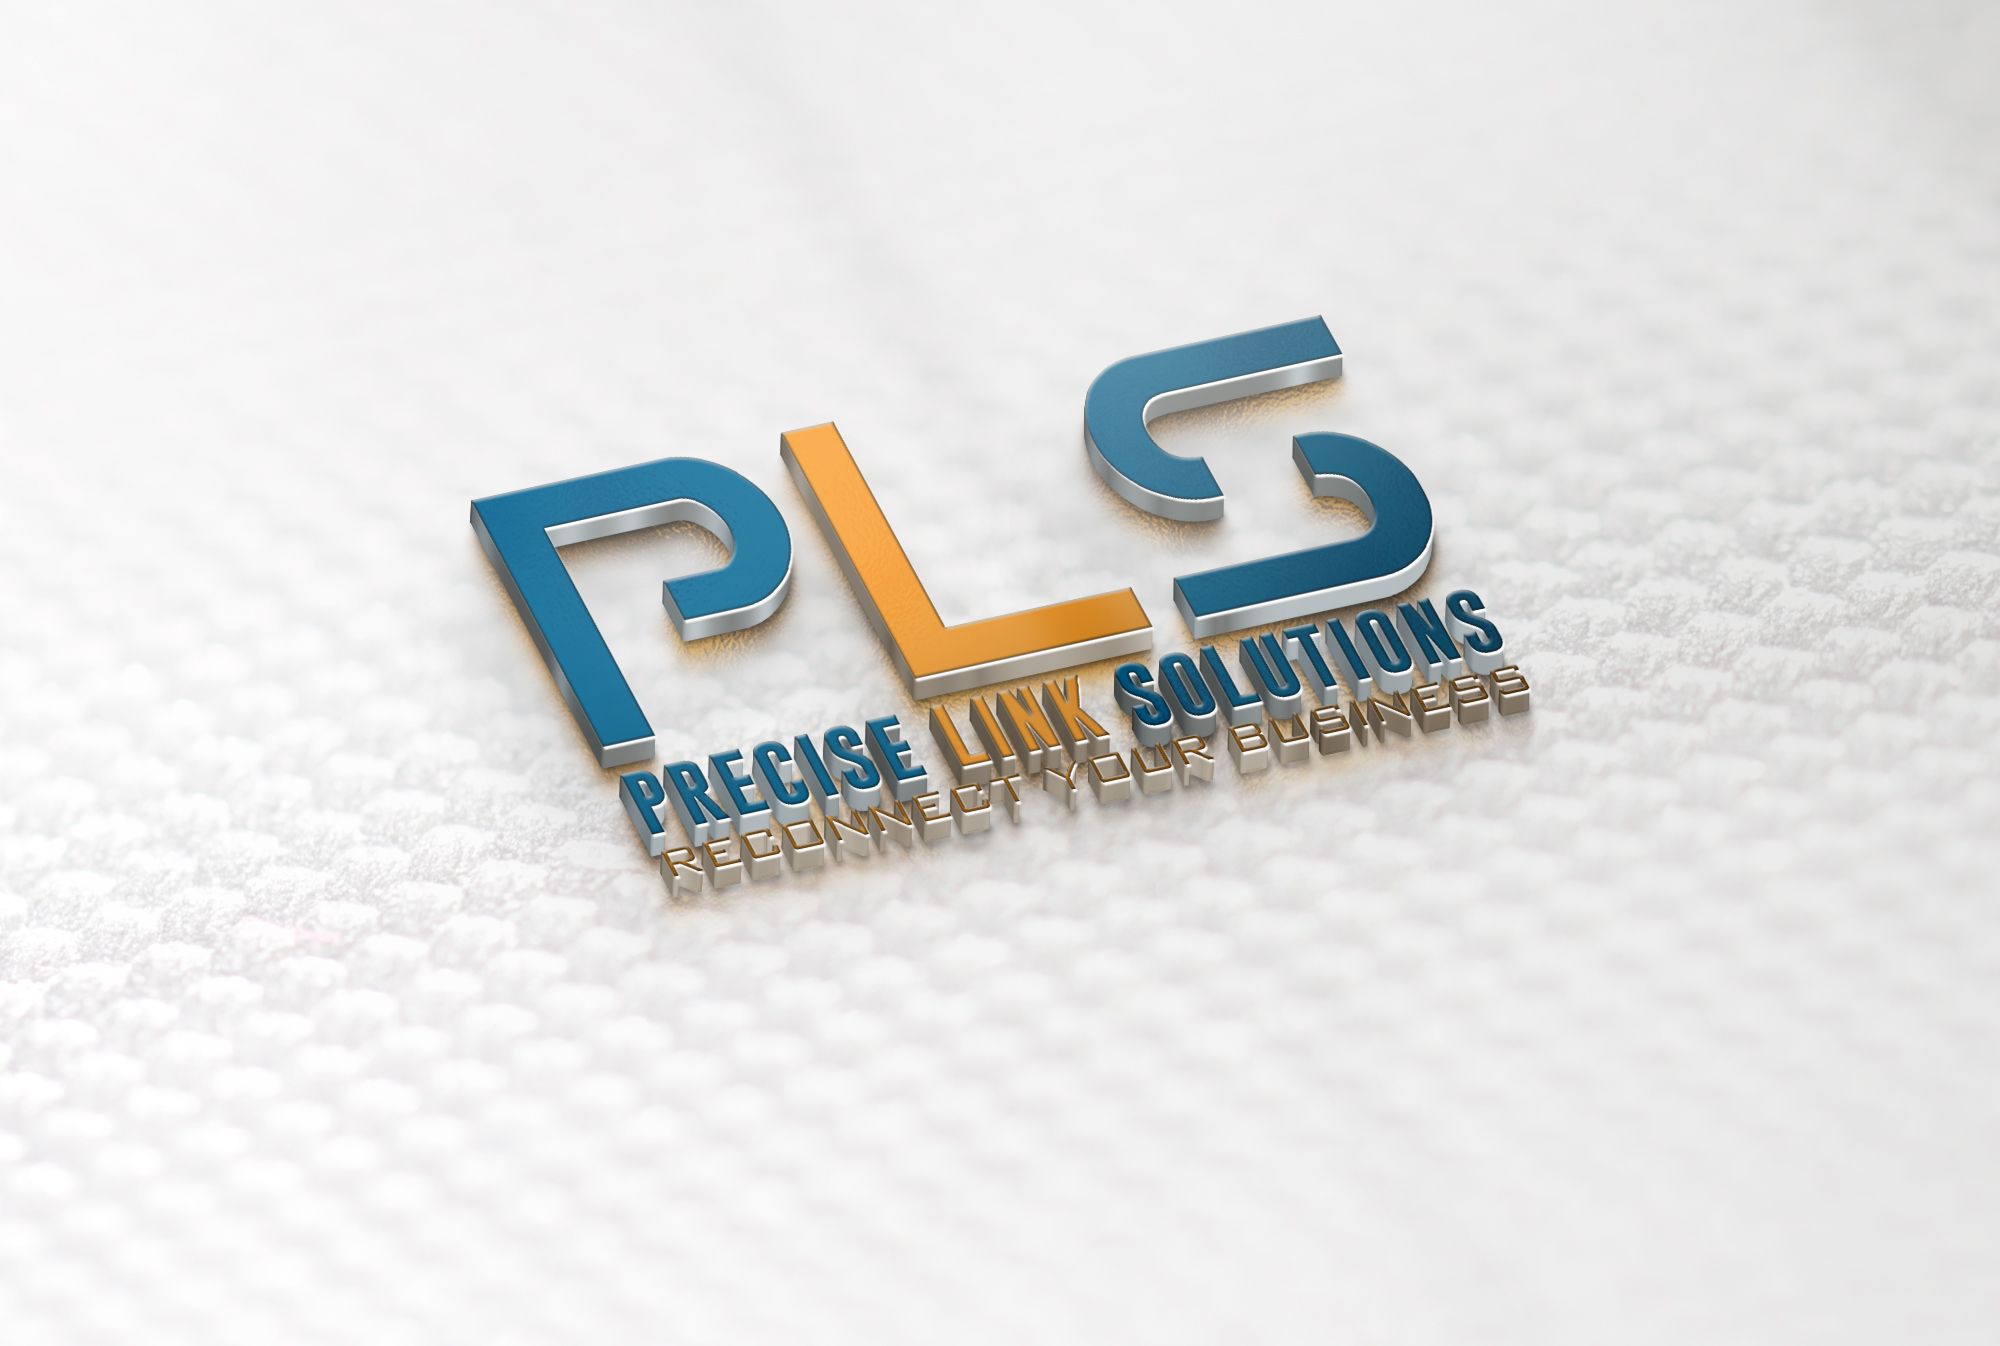 Precise Link Solutions